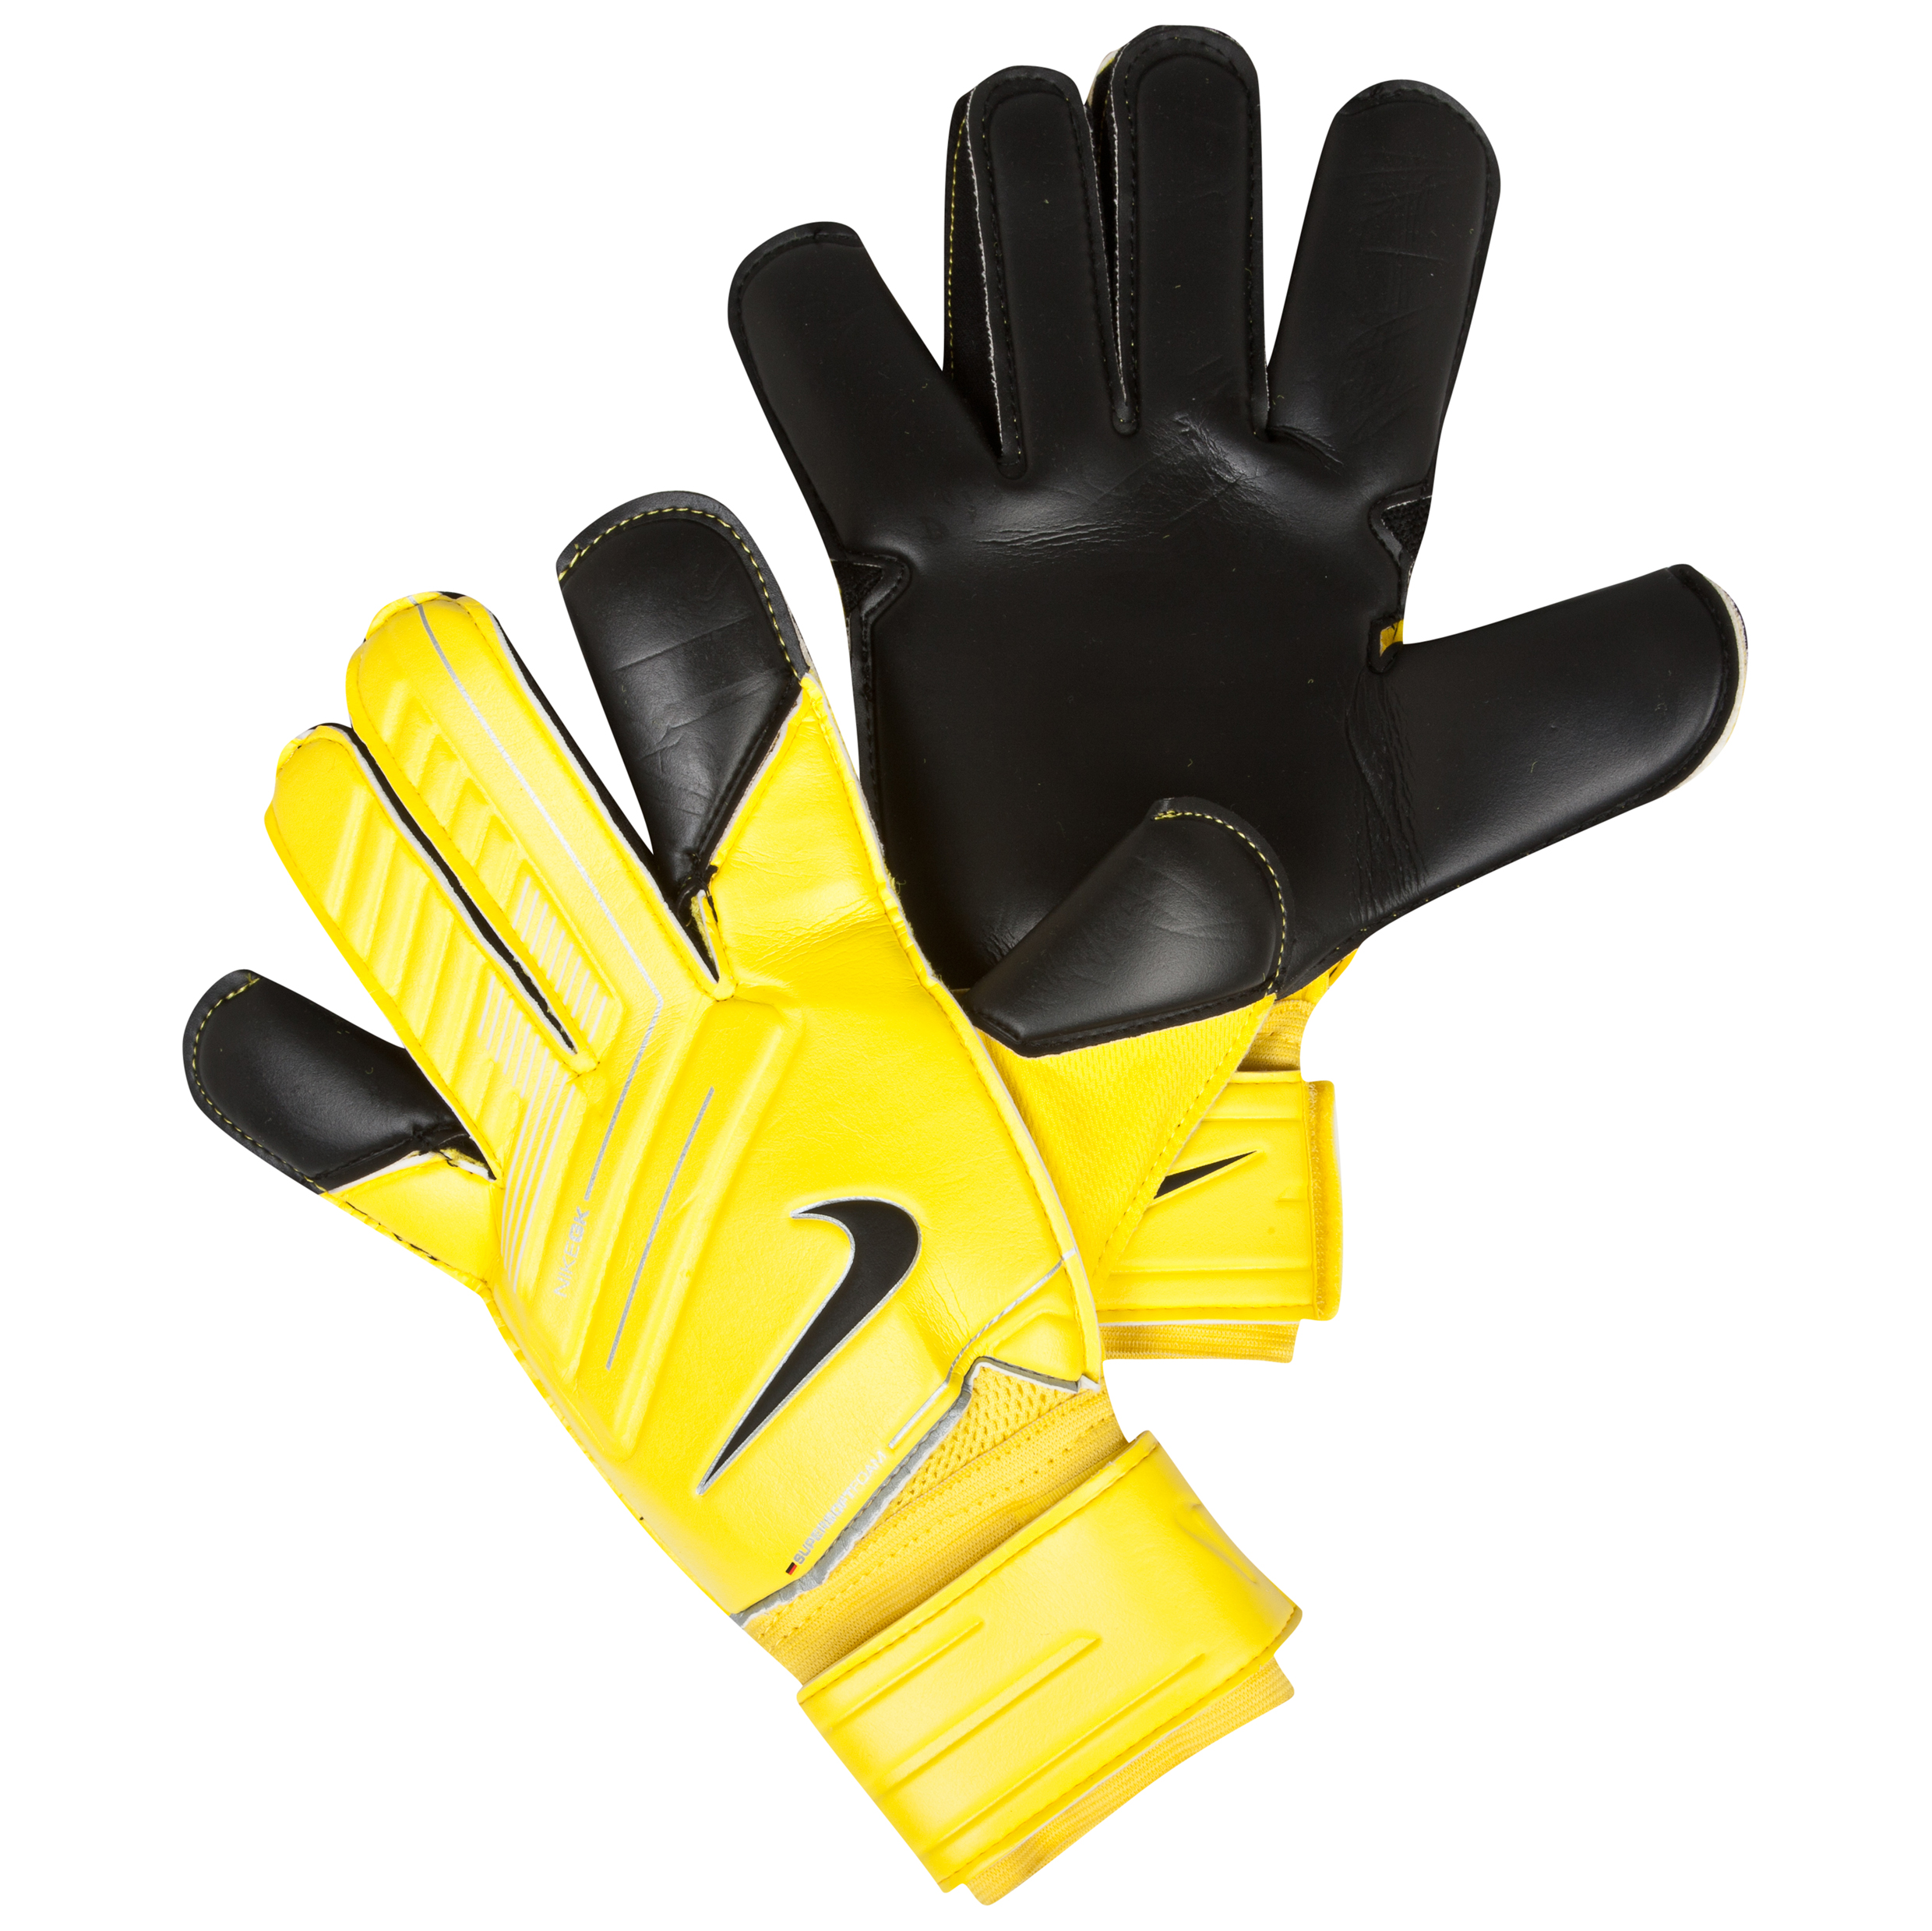 Nike Grip 3 Goalkeeper Gloves Yellow